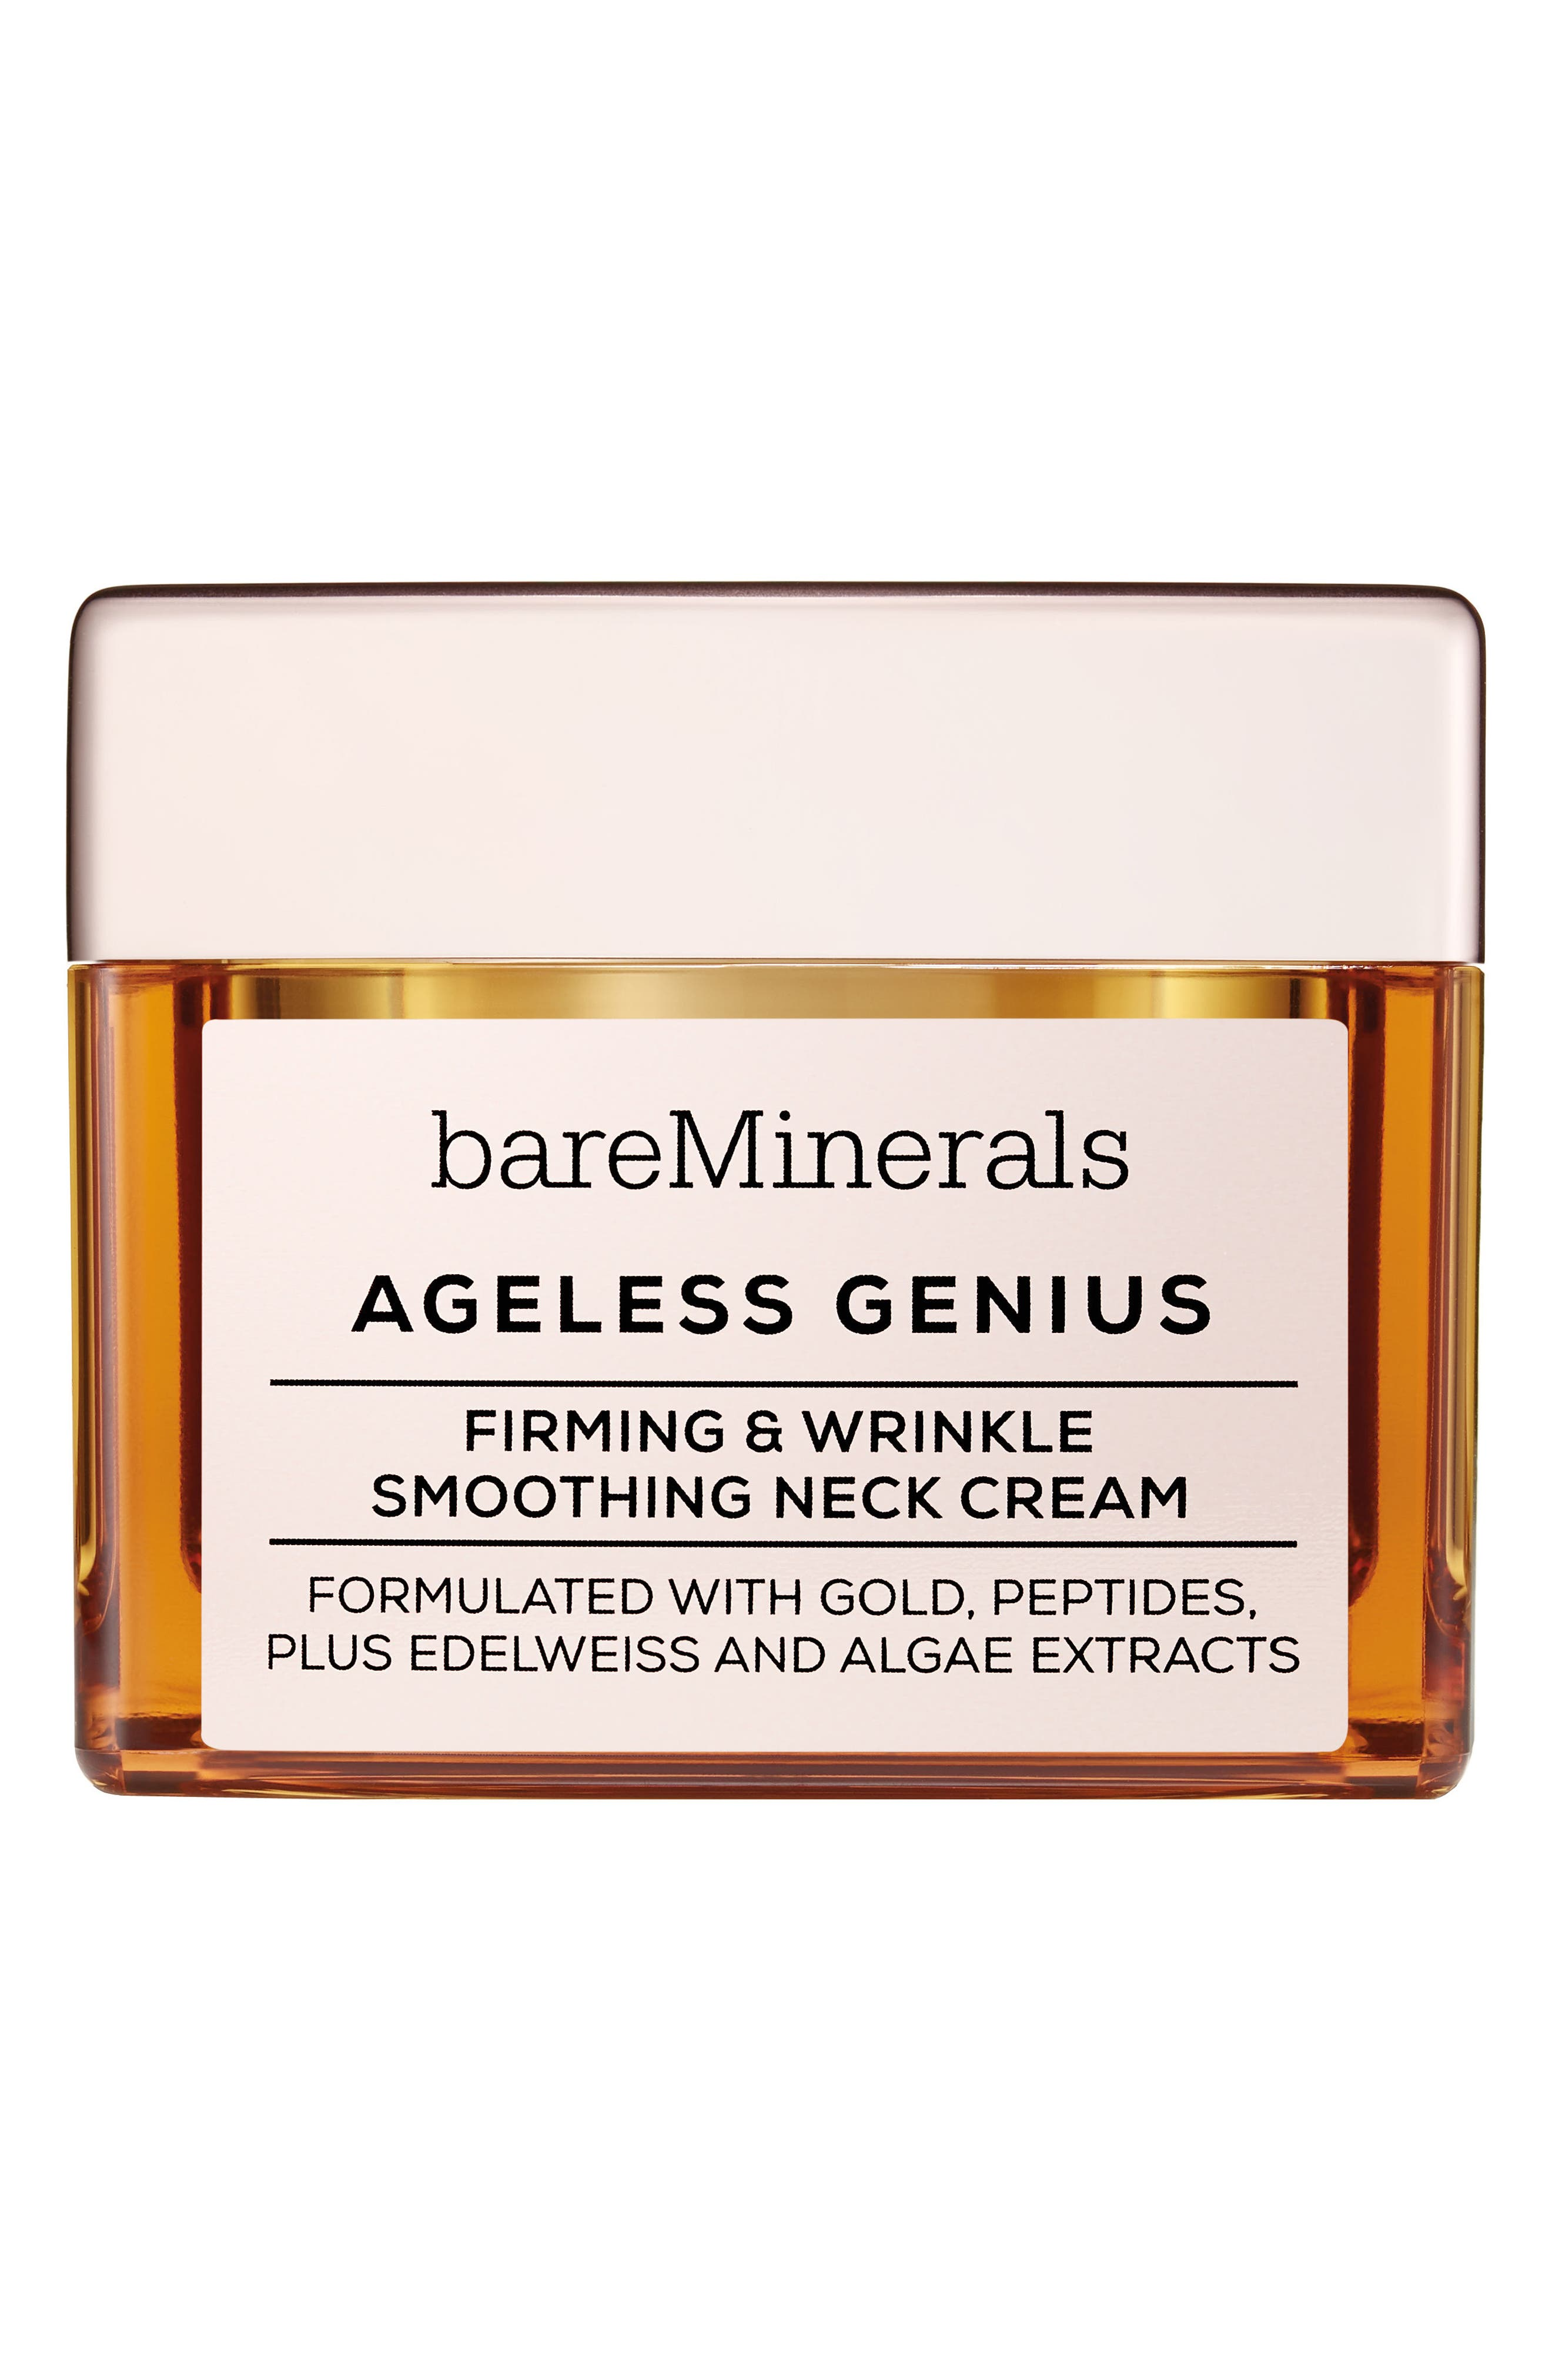 bareMinerals® Ageless Genius Firming & Wrinkle Smoothing Neck Cream